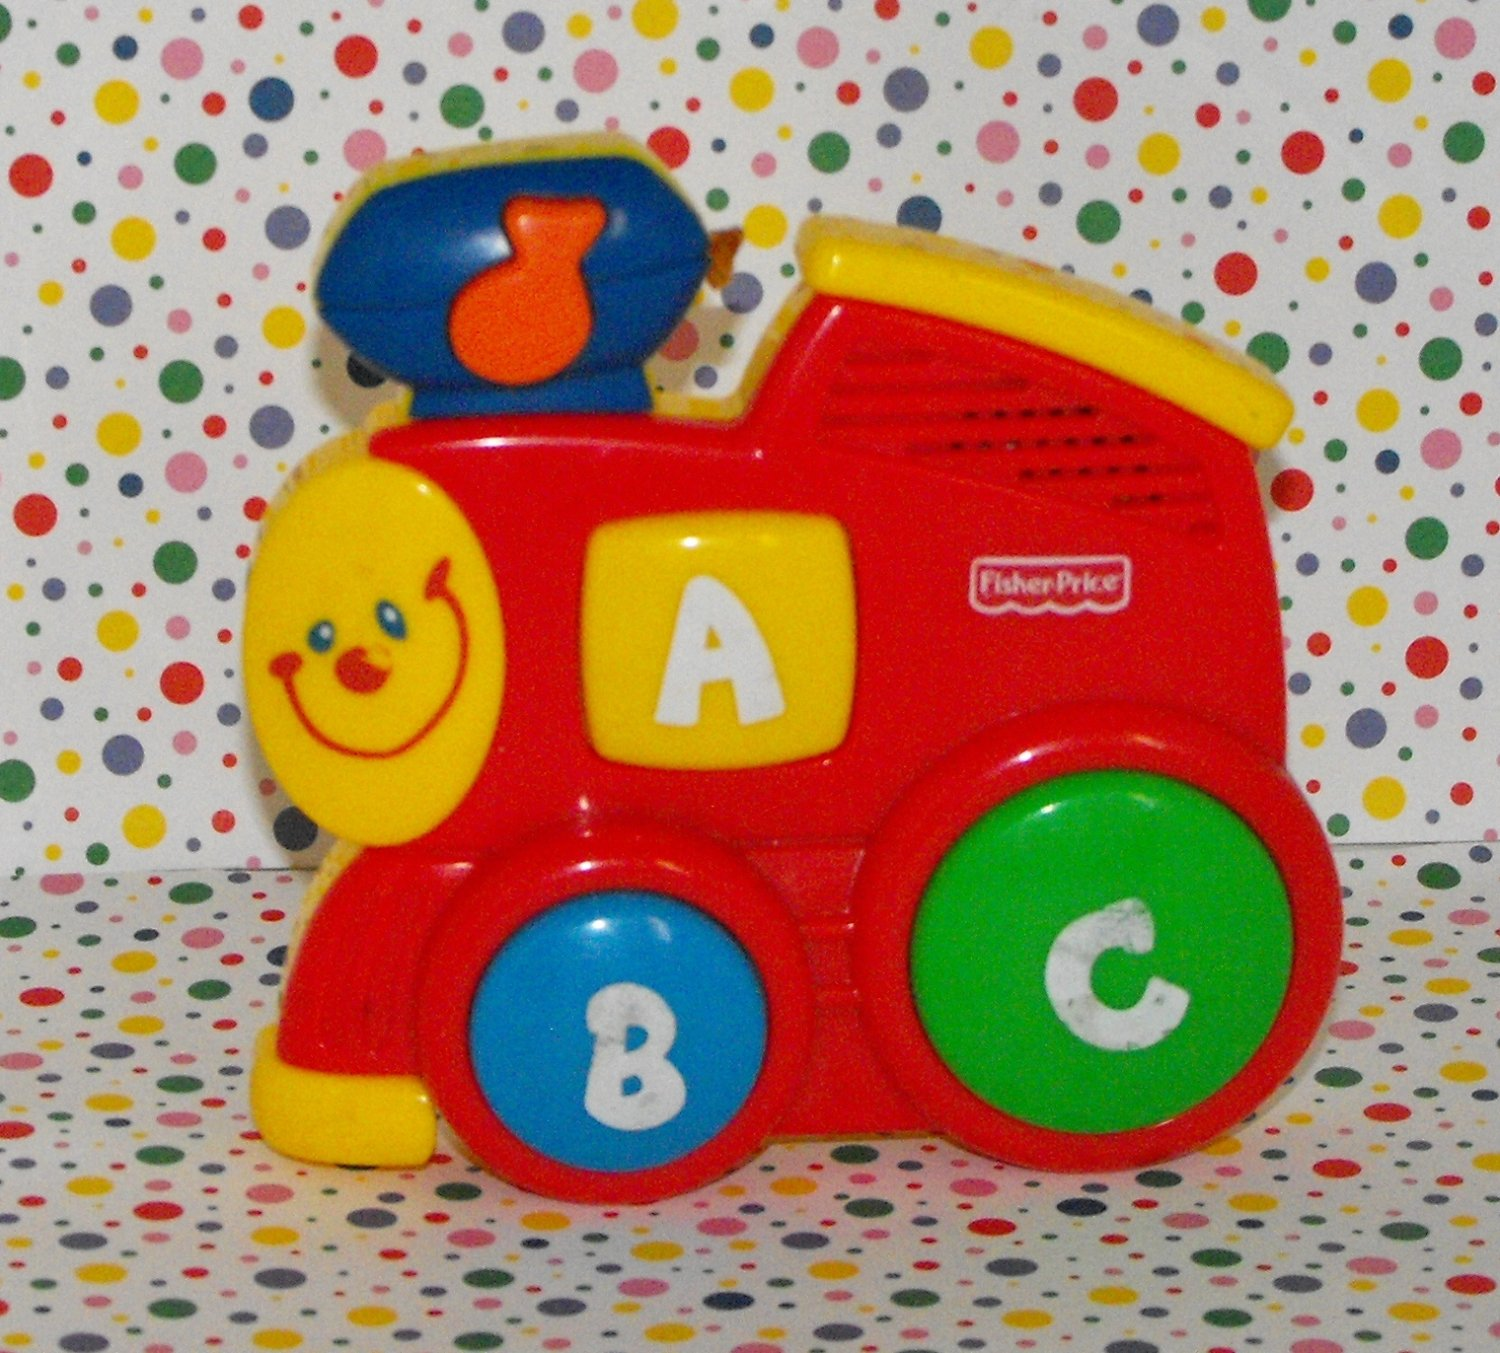 Baby Smartronics A-B-C Train